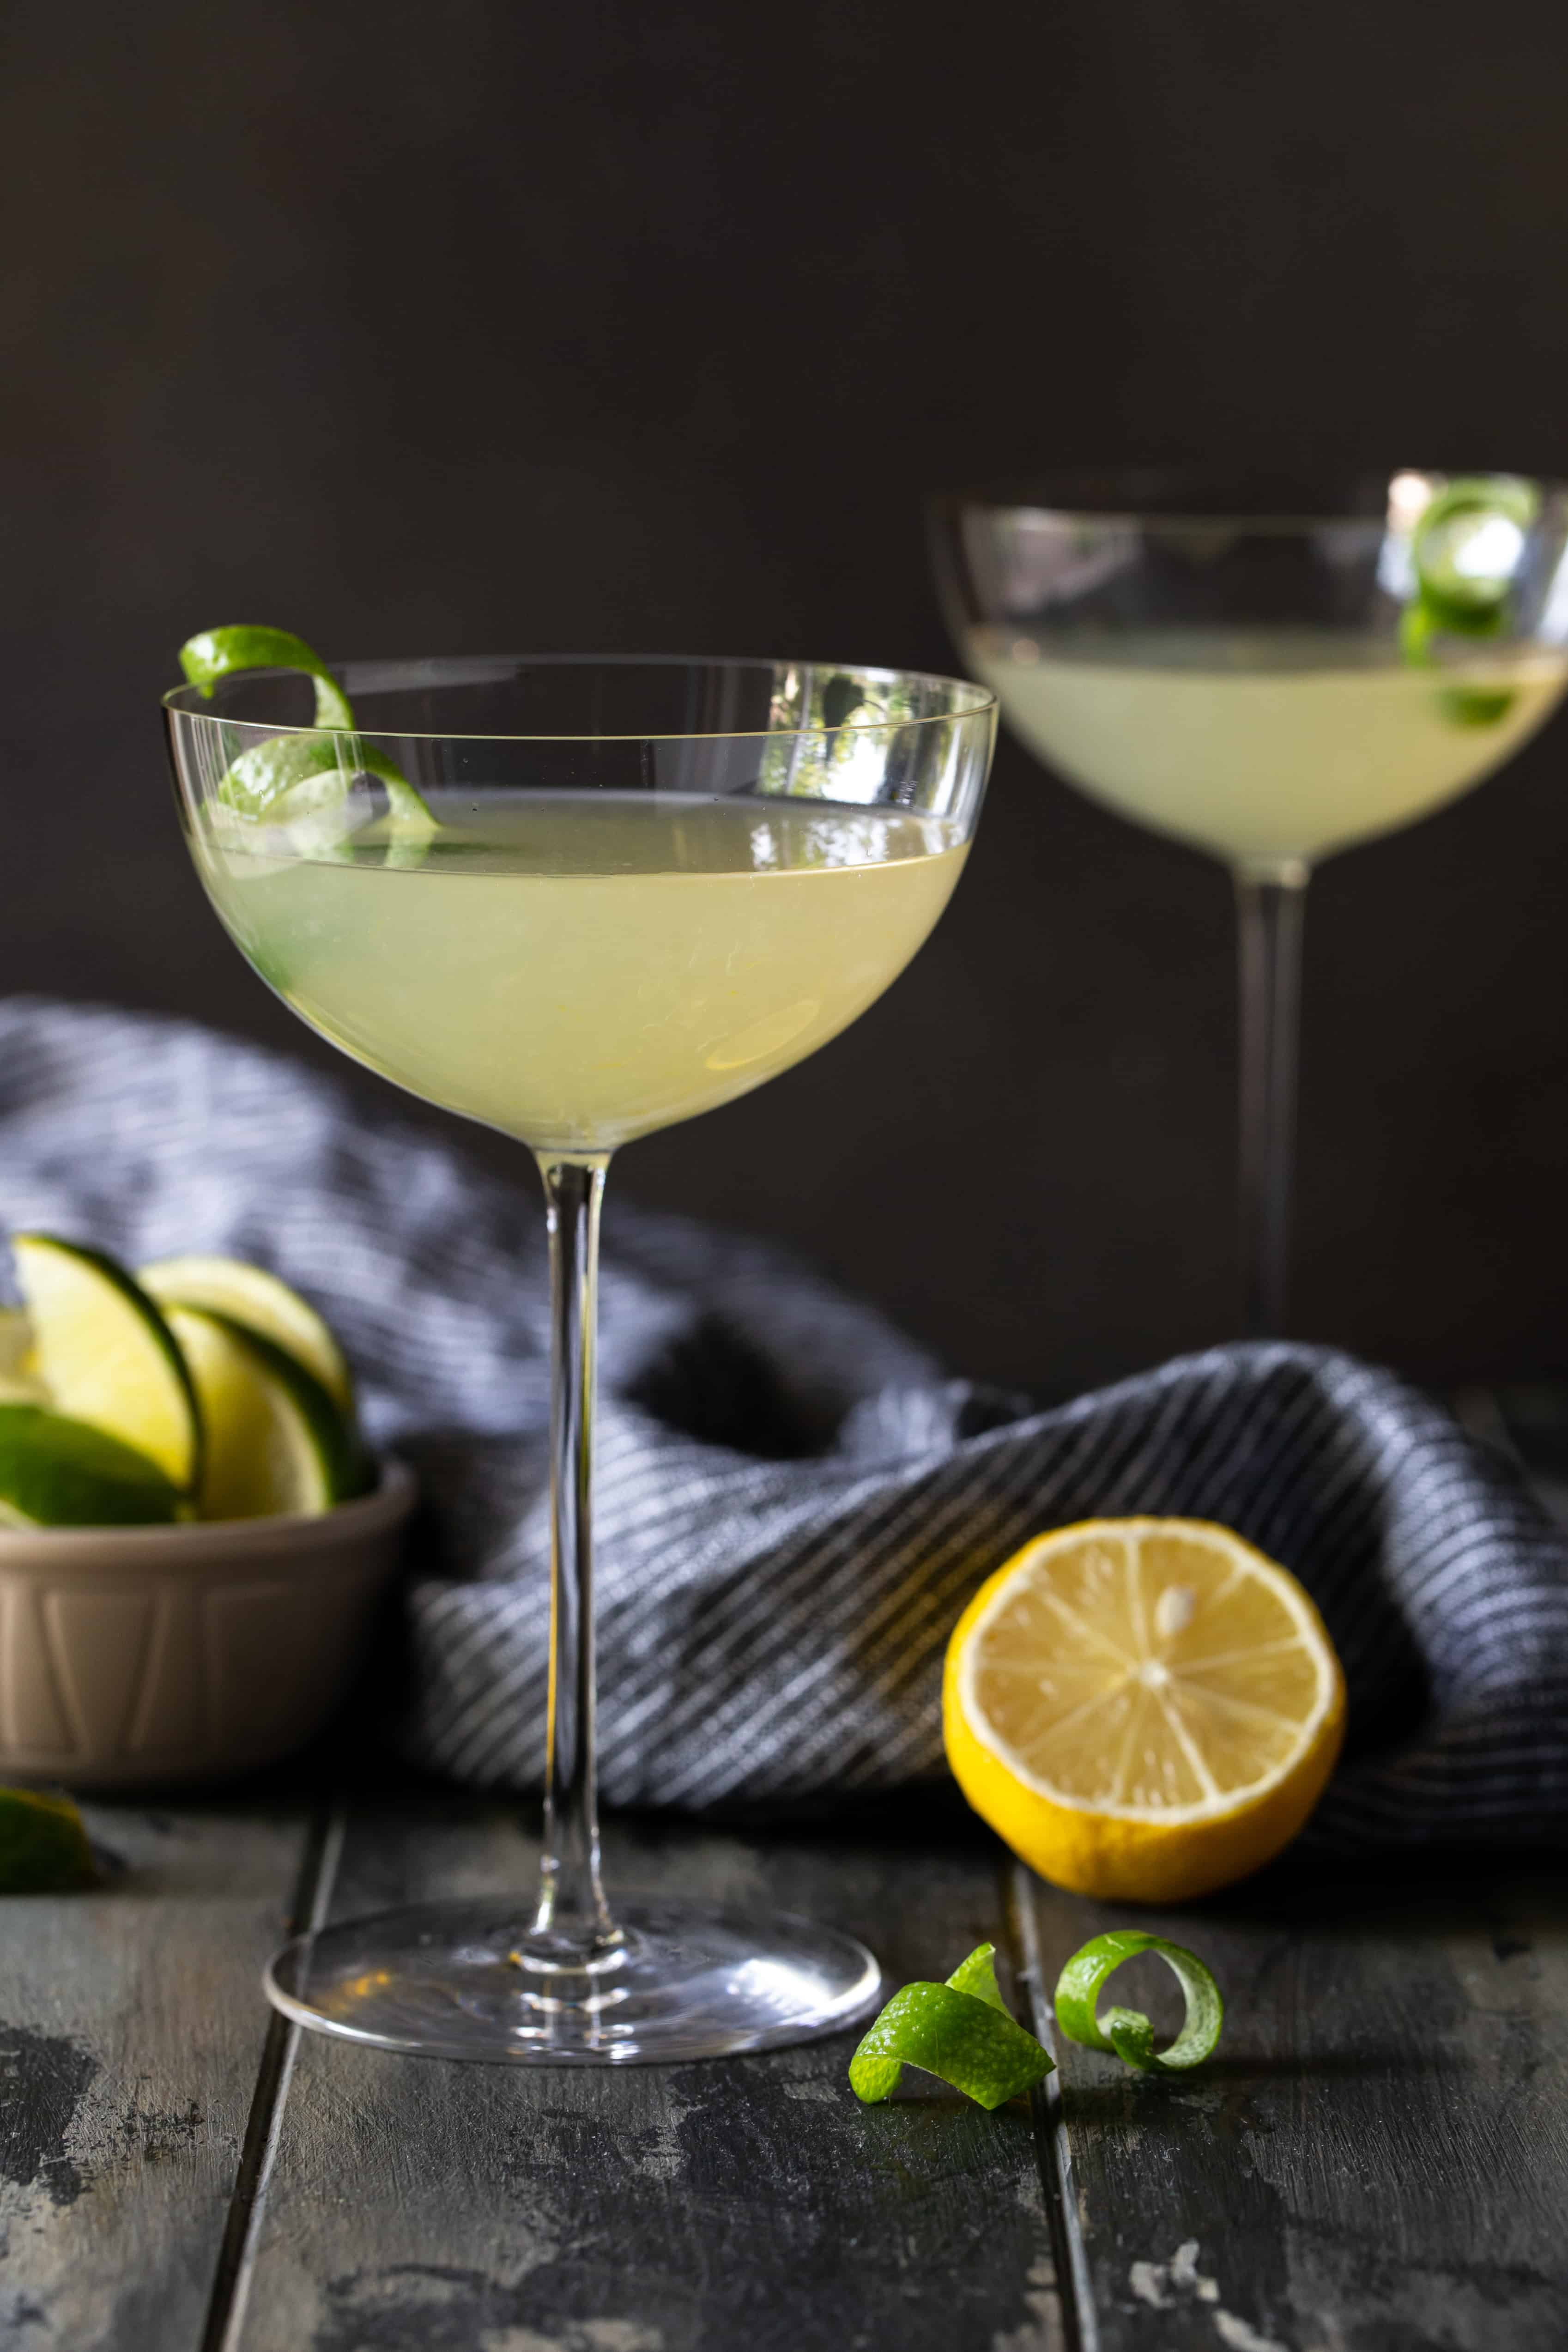 2 elderflower martinis in tall coupe glasses with lime twists for garnish on a dark background.